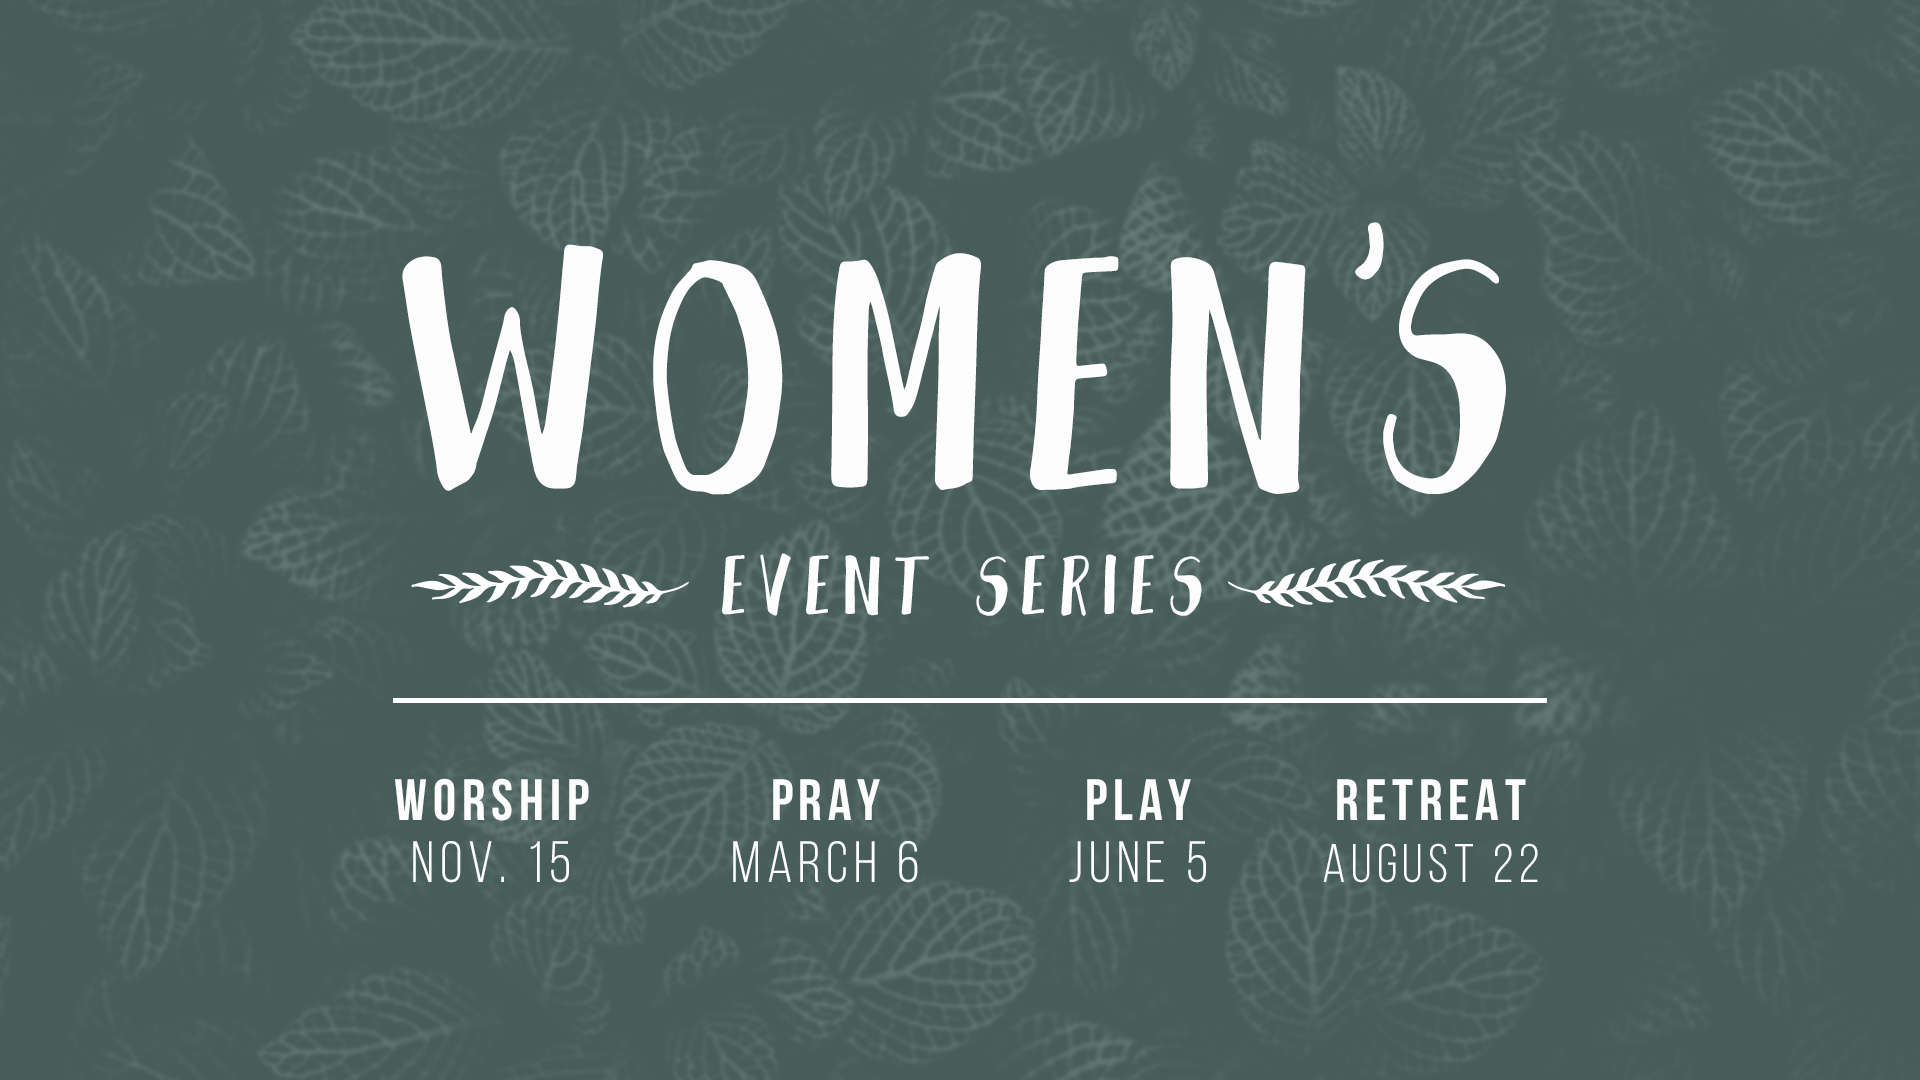 Women's Event Series